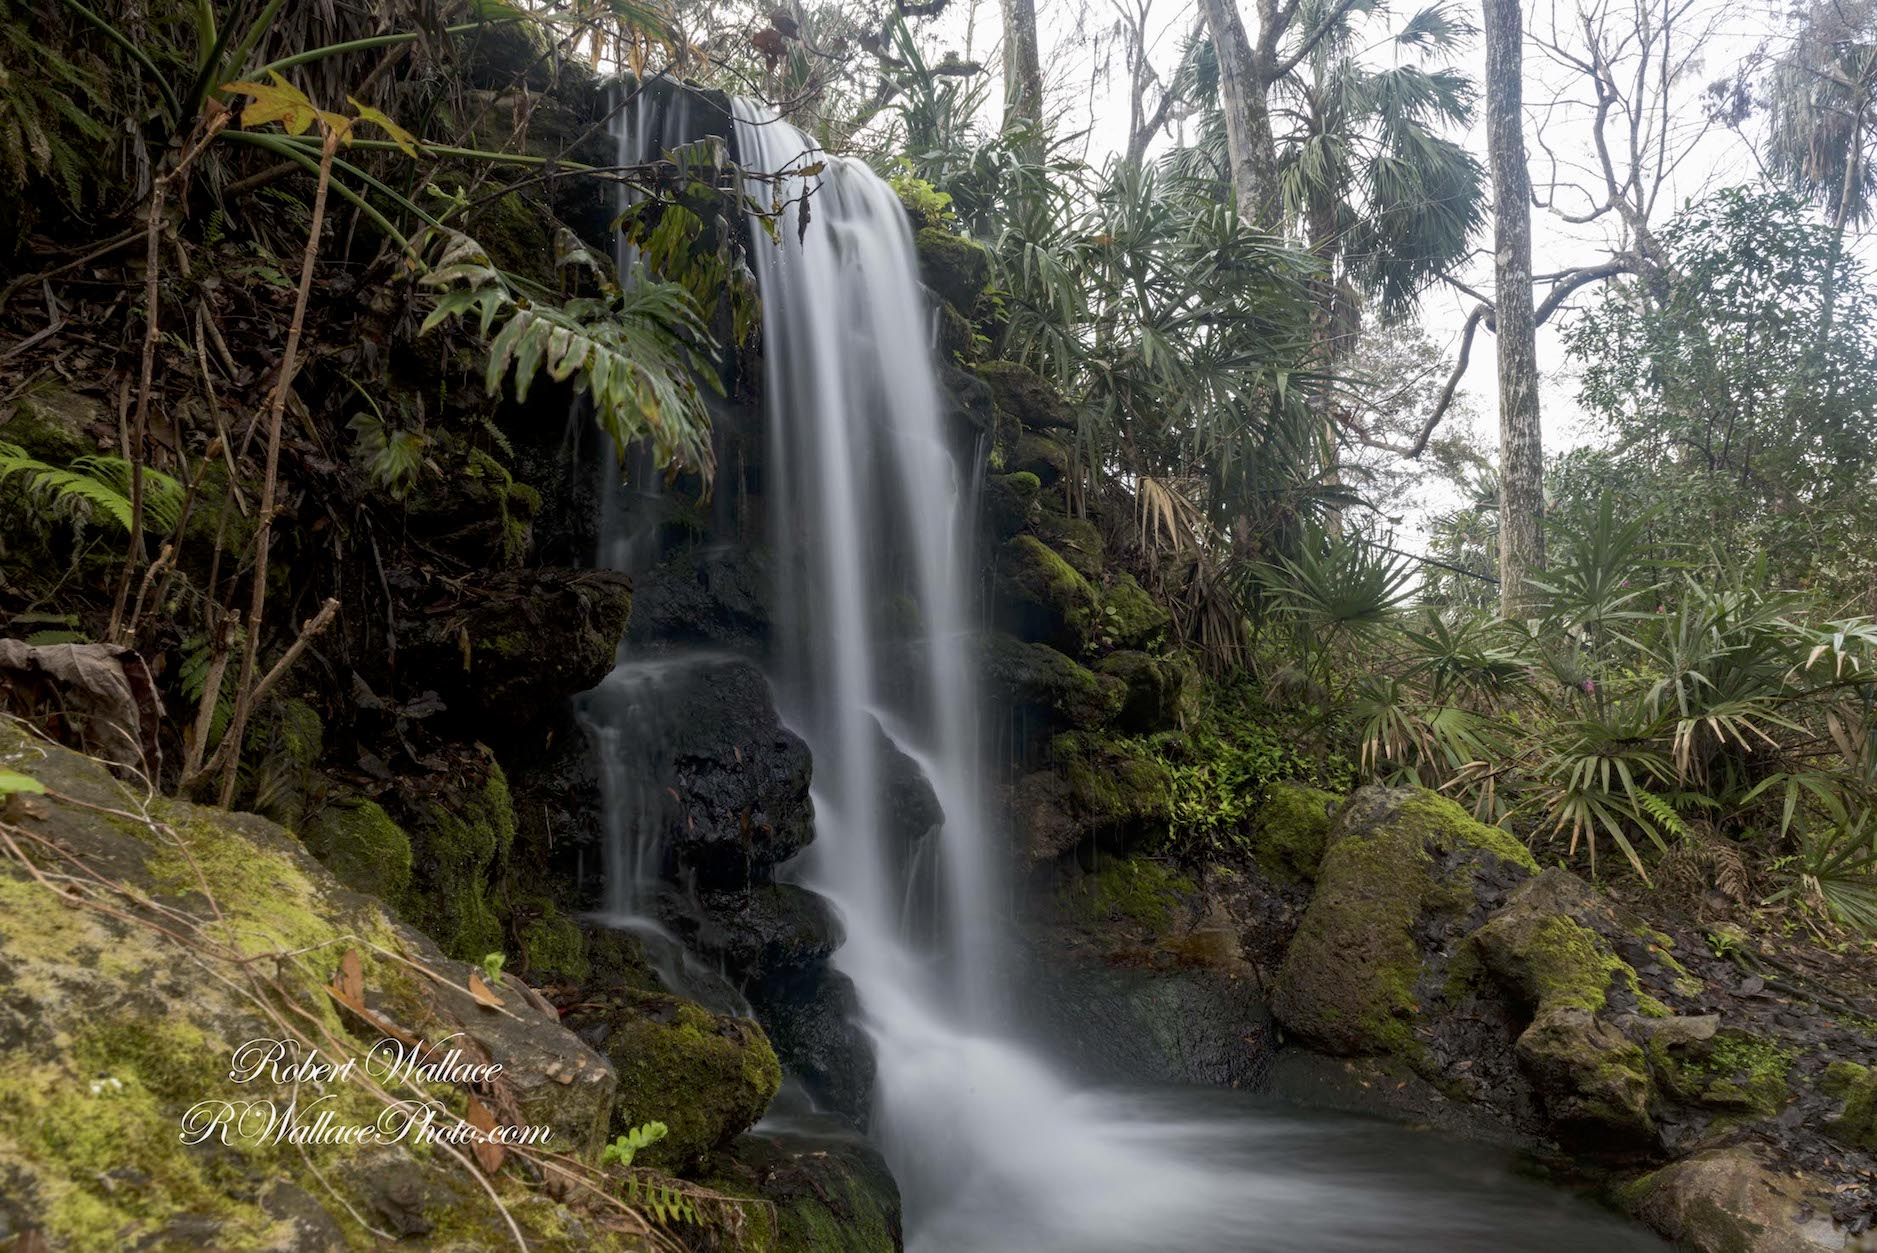 ONE OF THE WATERFALLS AT RAINBOW SPRINGS STATE PARK, AN OASIS OF NATURE CREATED ON THE SITE OF A DEFUNCT THEME PARK AND PHOSPHORUS MINE CLOSED IN 1970. IMAGE: ROBERT WALLACE RWALLACE PHOTO.COM